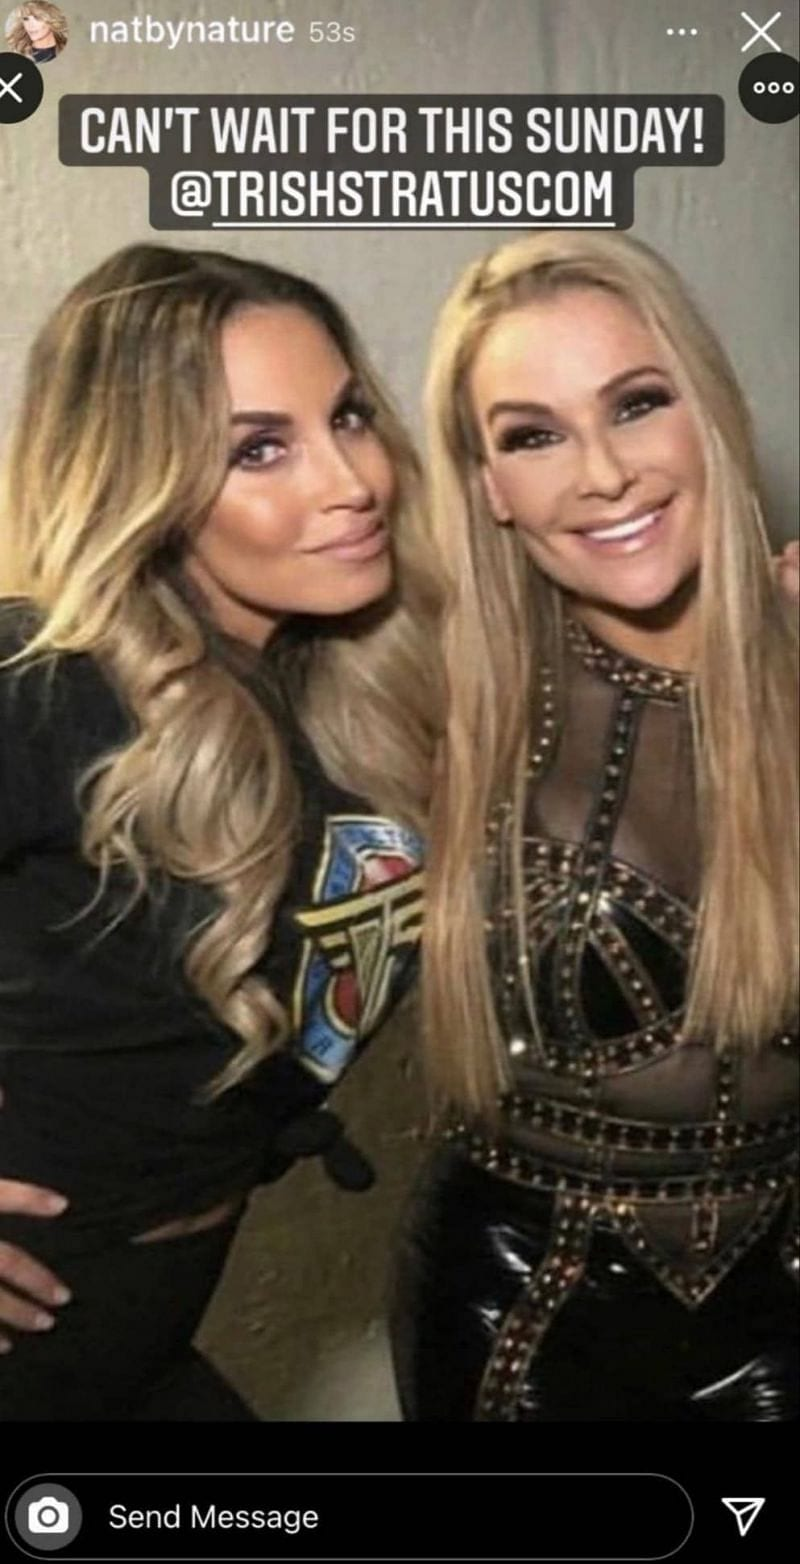 Natalya possibly spoils Trish Stratus' entry in the Women's Royal Rumble 2021 match